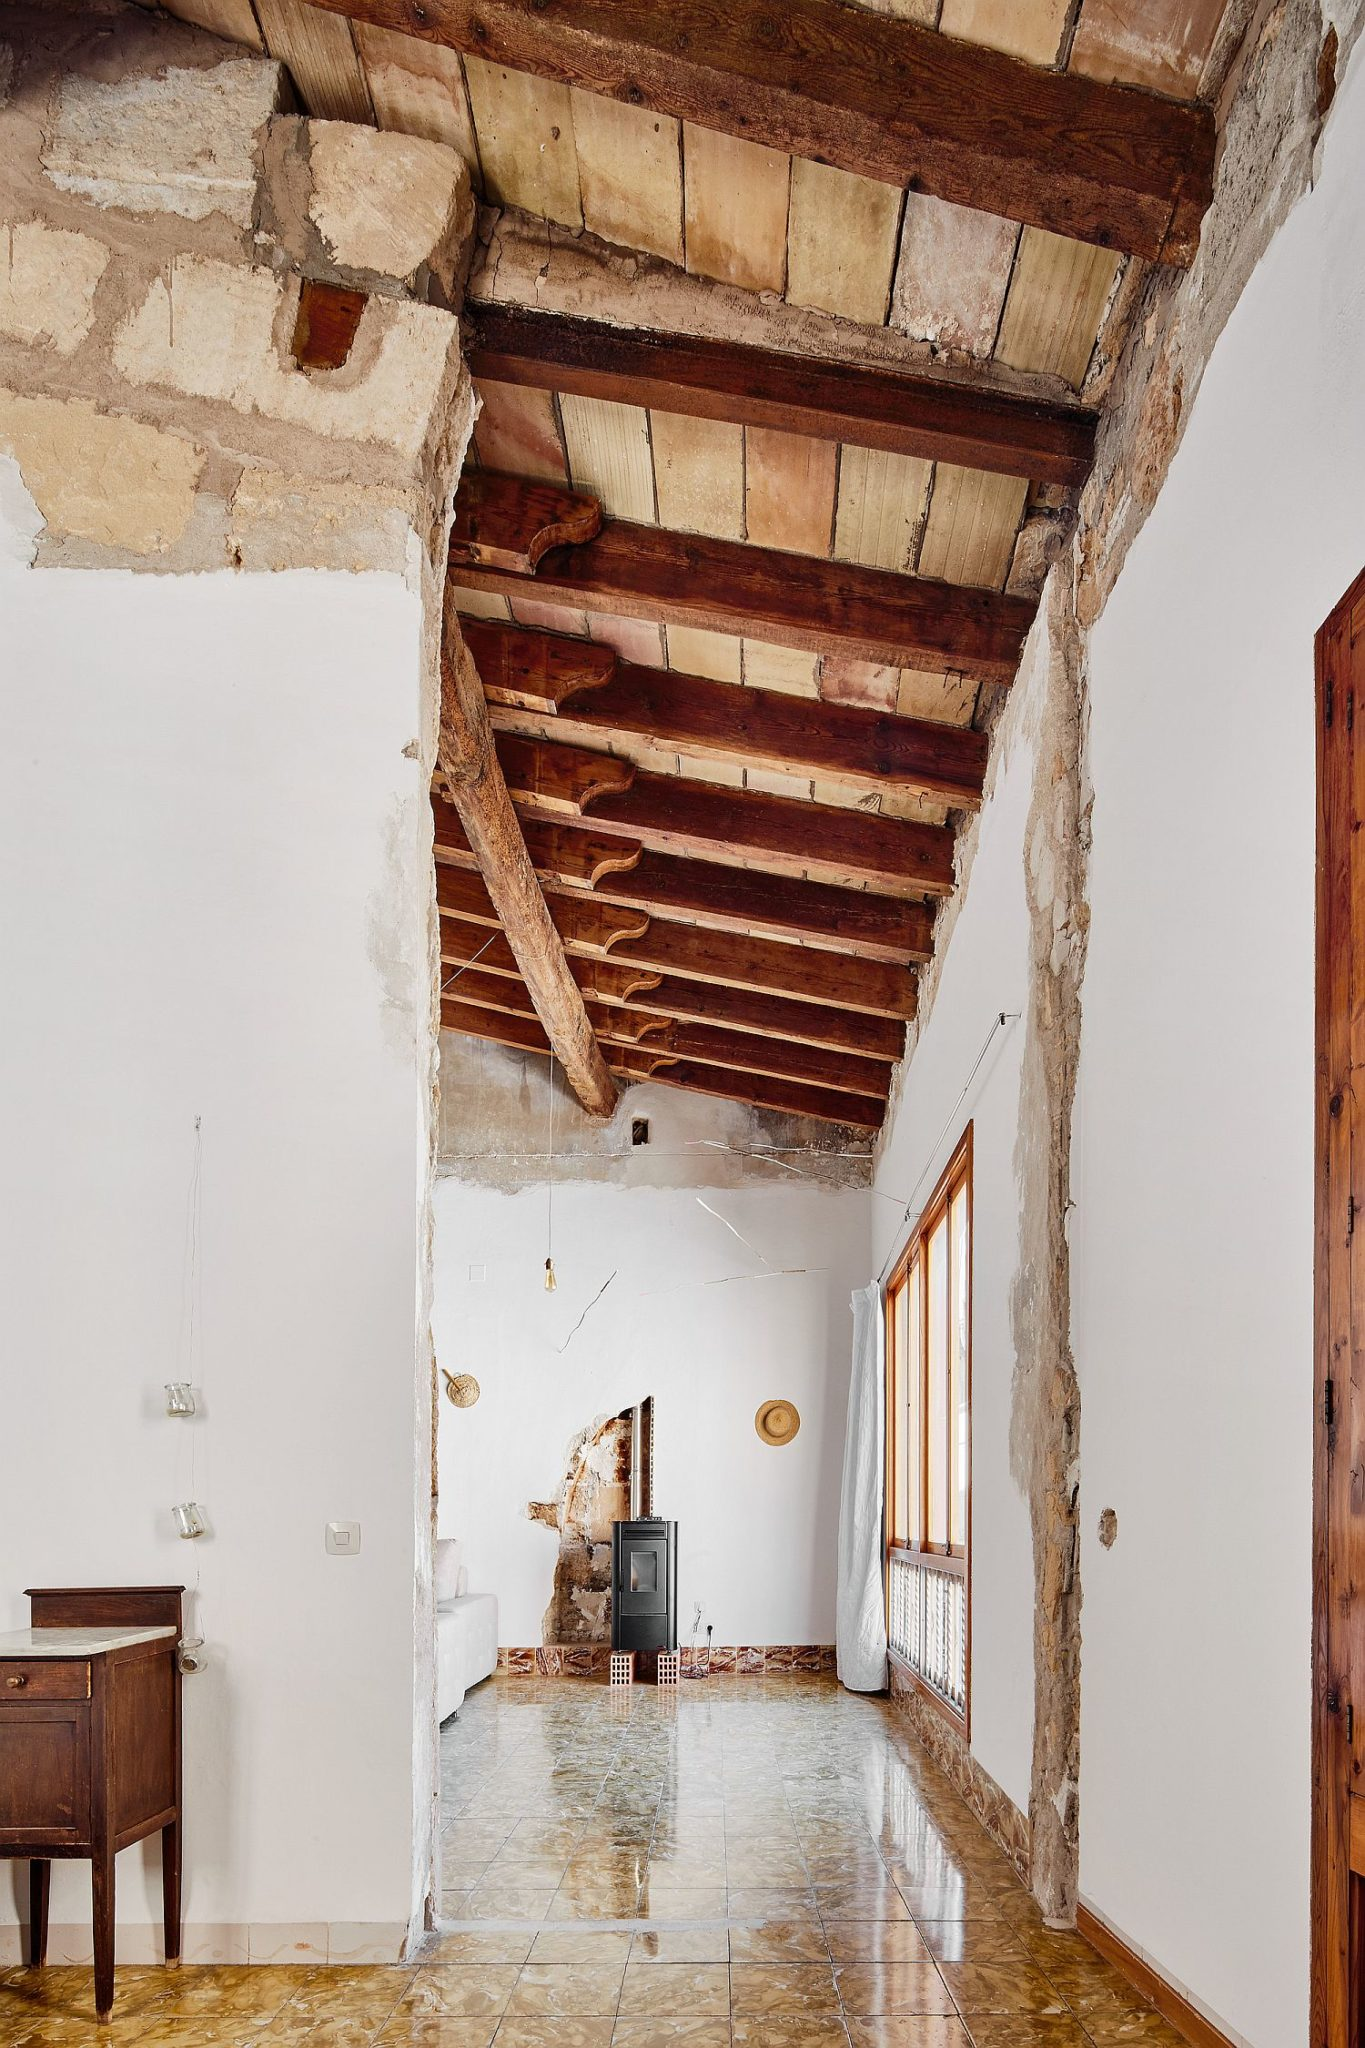 Exposed wooden ceiling and walls give the interior a new look